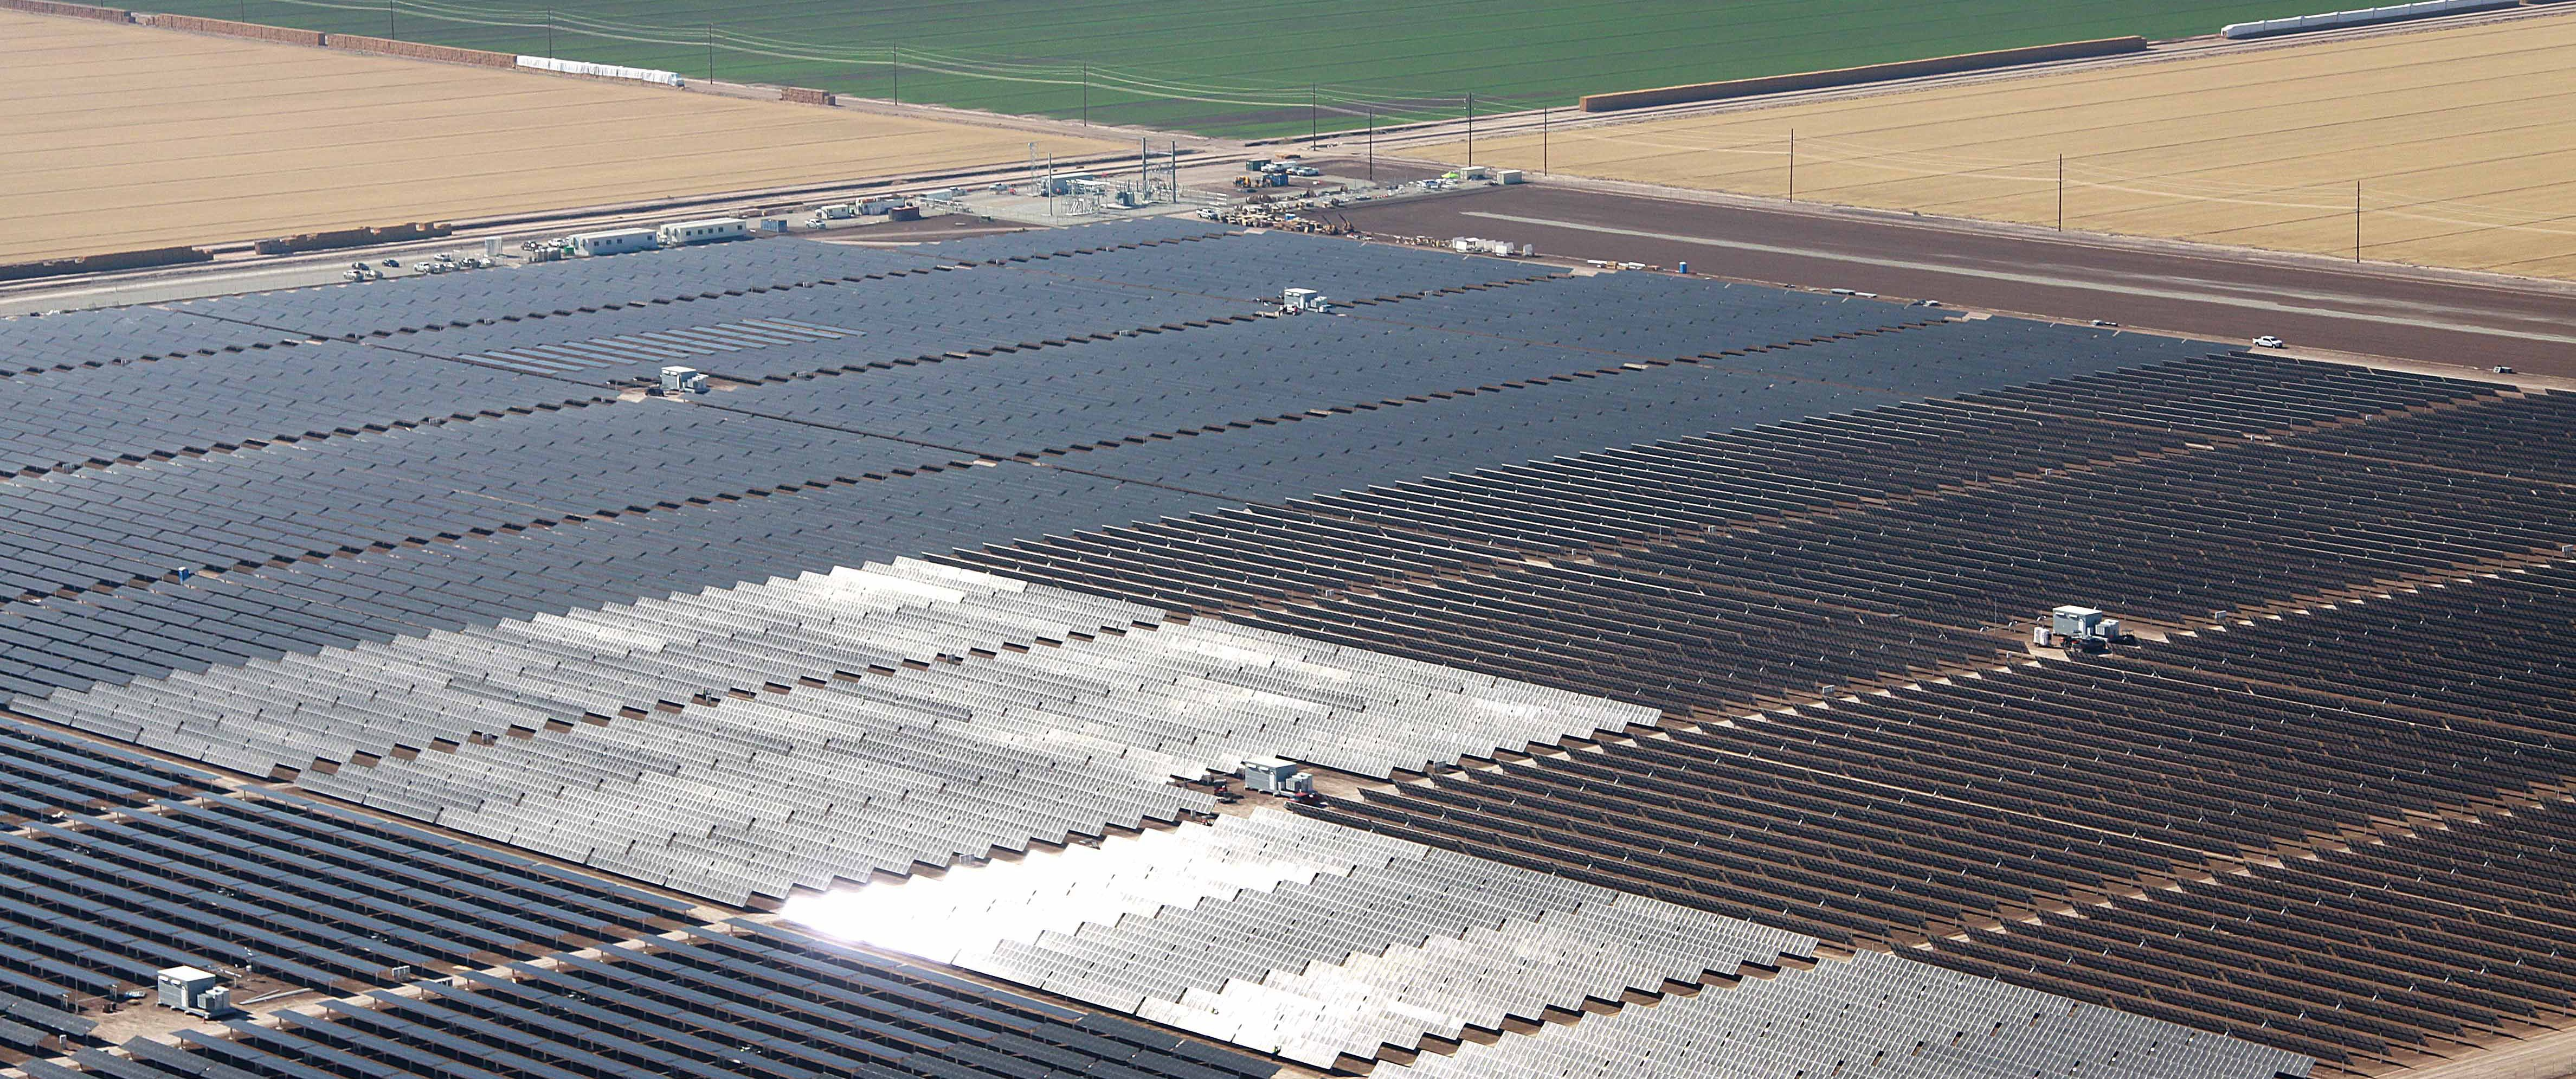 Solar Frontier Americas Development Announces Ribbon Cutting Event For 20 MW Solar Power Generation Plant In Southern California